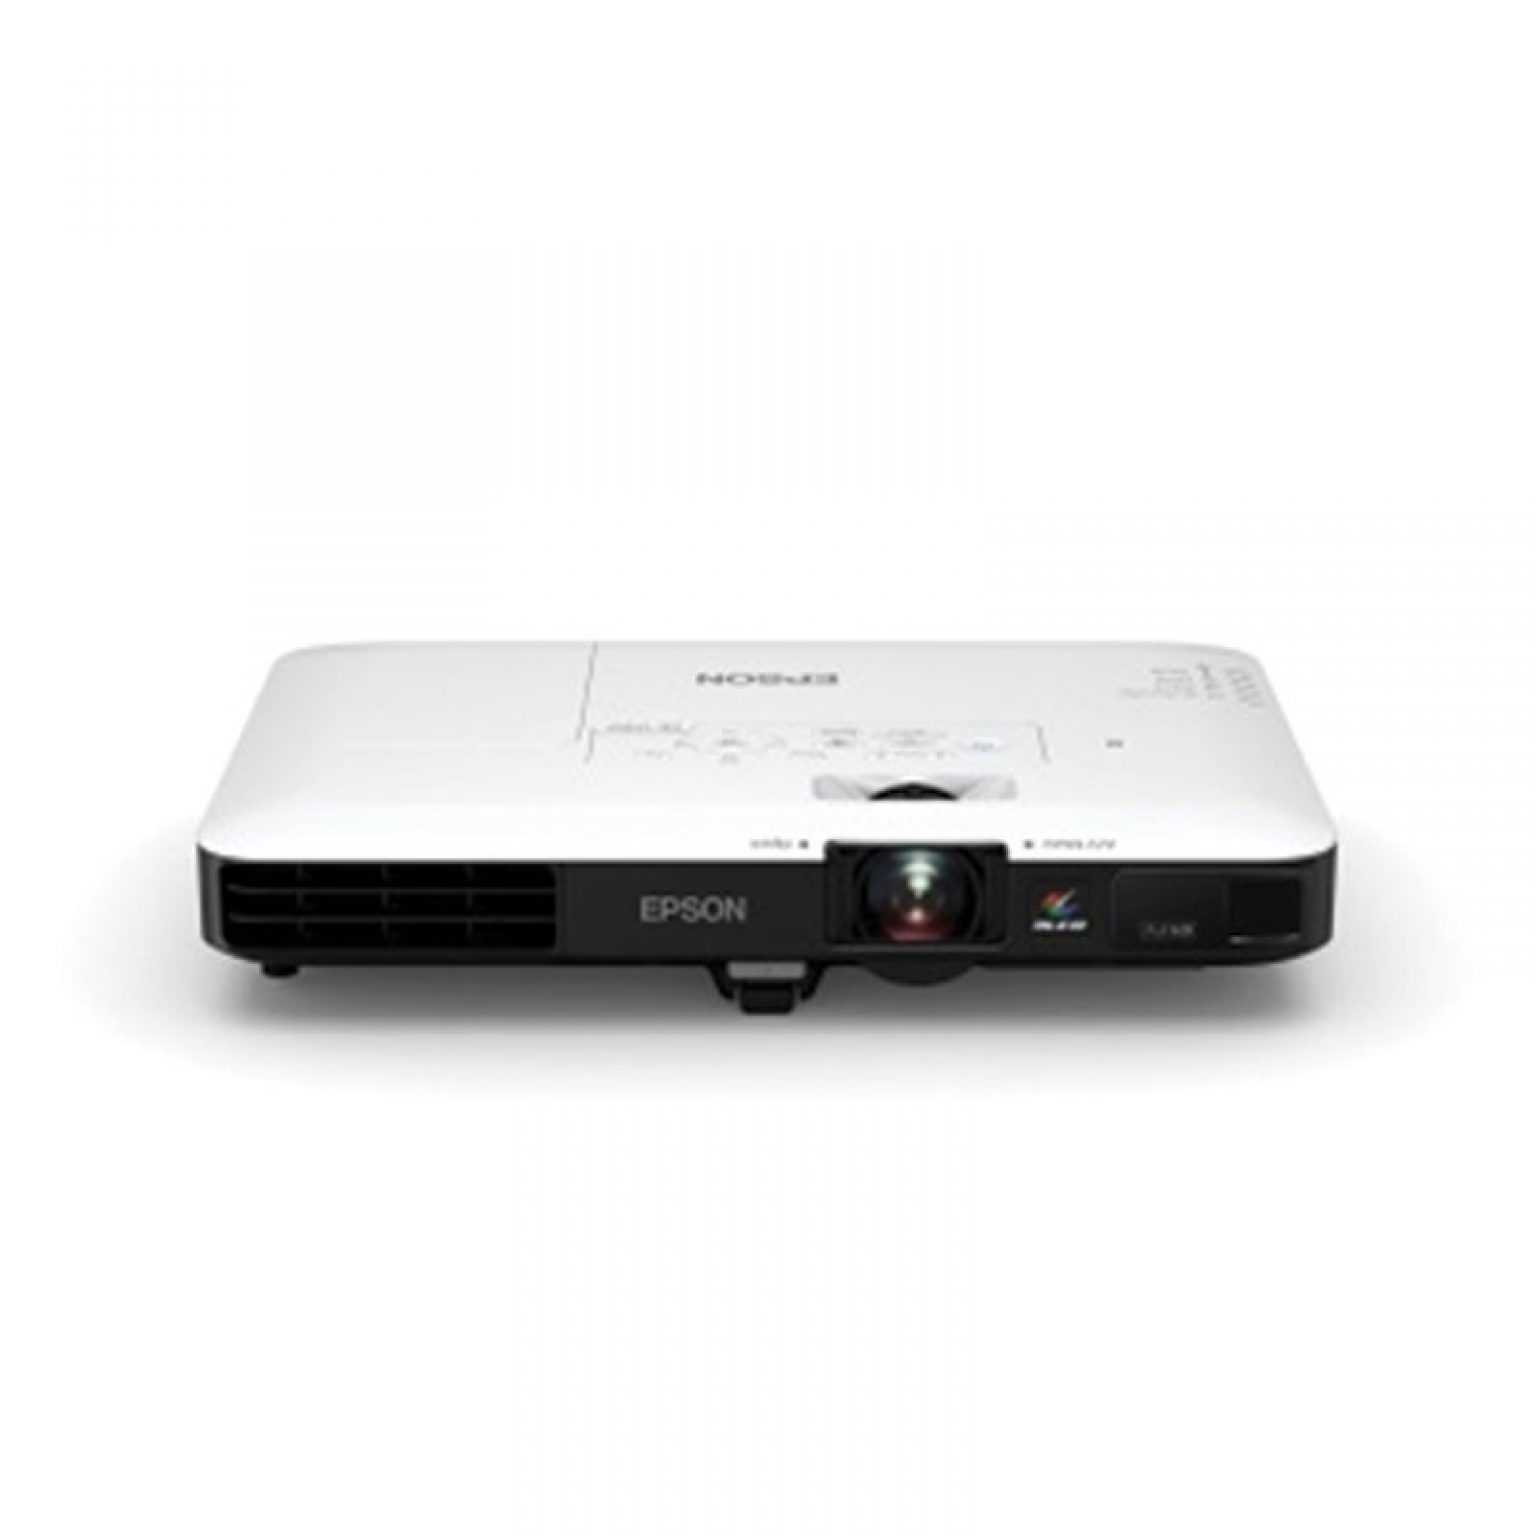 EPSON - Projector EB-1780